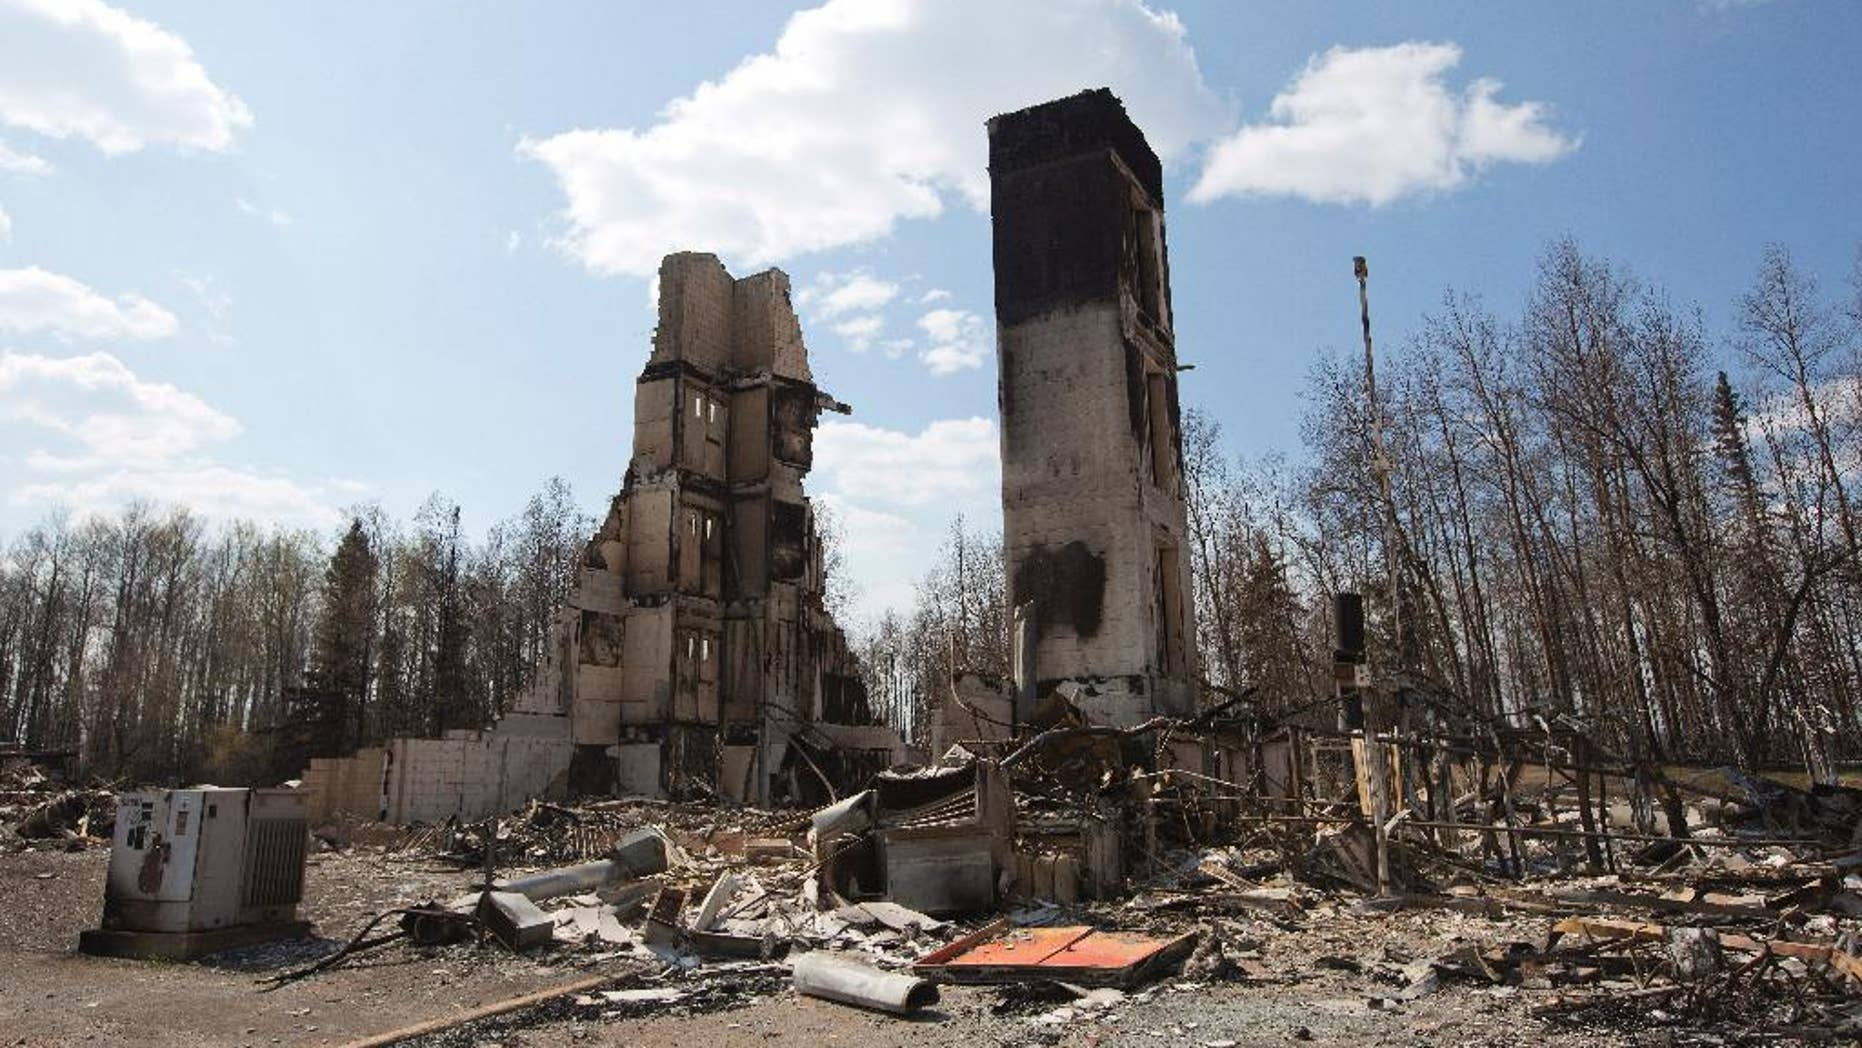 A burned building stands among charred rubble in the neighborhood of Abasand in wildfire-ravaged Fort McMurray, Alberta, on Friday, May 13, 2016. (Jason Franson /The Canadian Press via AP) MANDATORY CREDIT